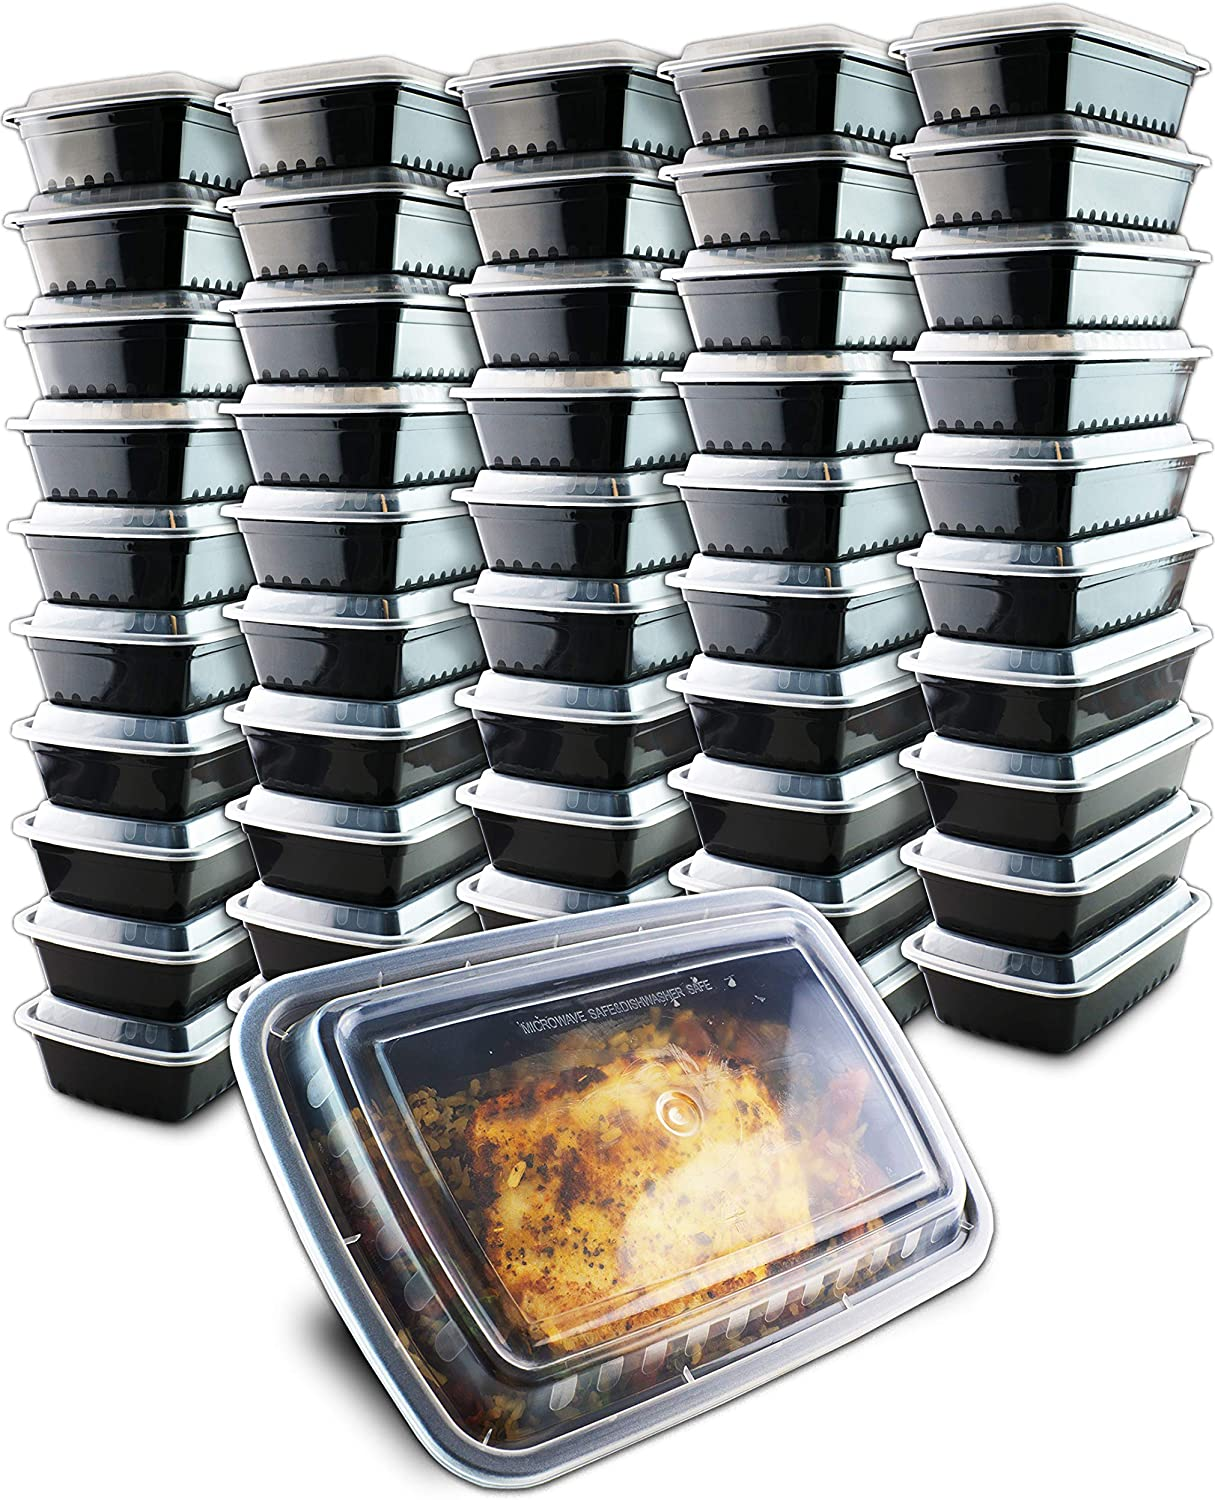 50 Pack- Chefible 38 oz Large Food Storage Container, Bento, Meal Prep, Durable, BPA-free, Reusable, Washable, Microwavable, Perfect for Portion Control!